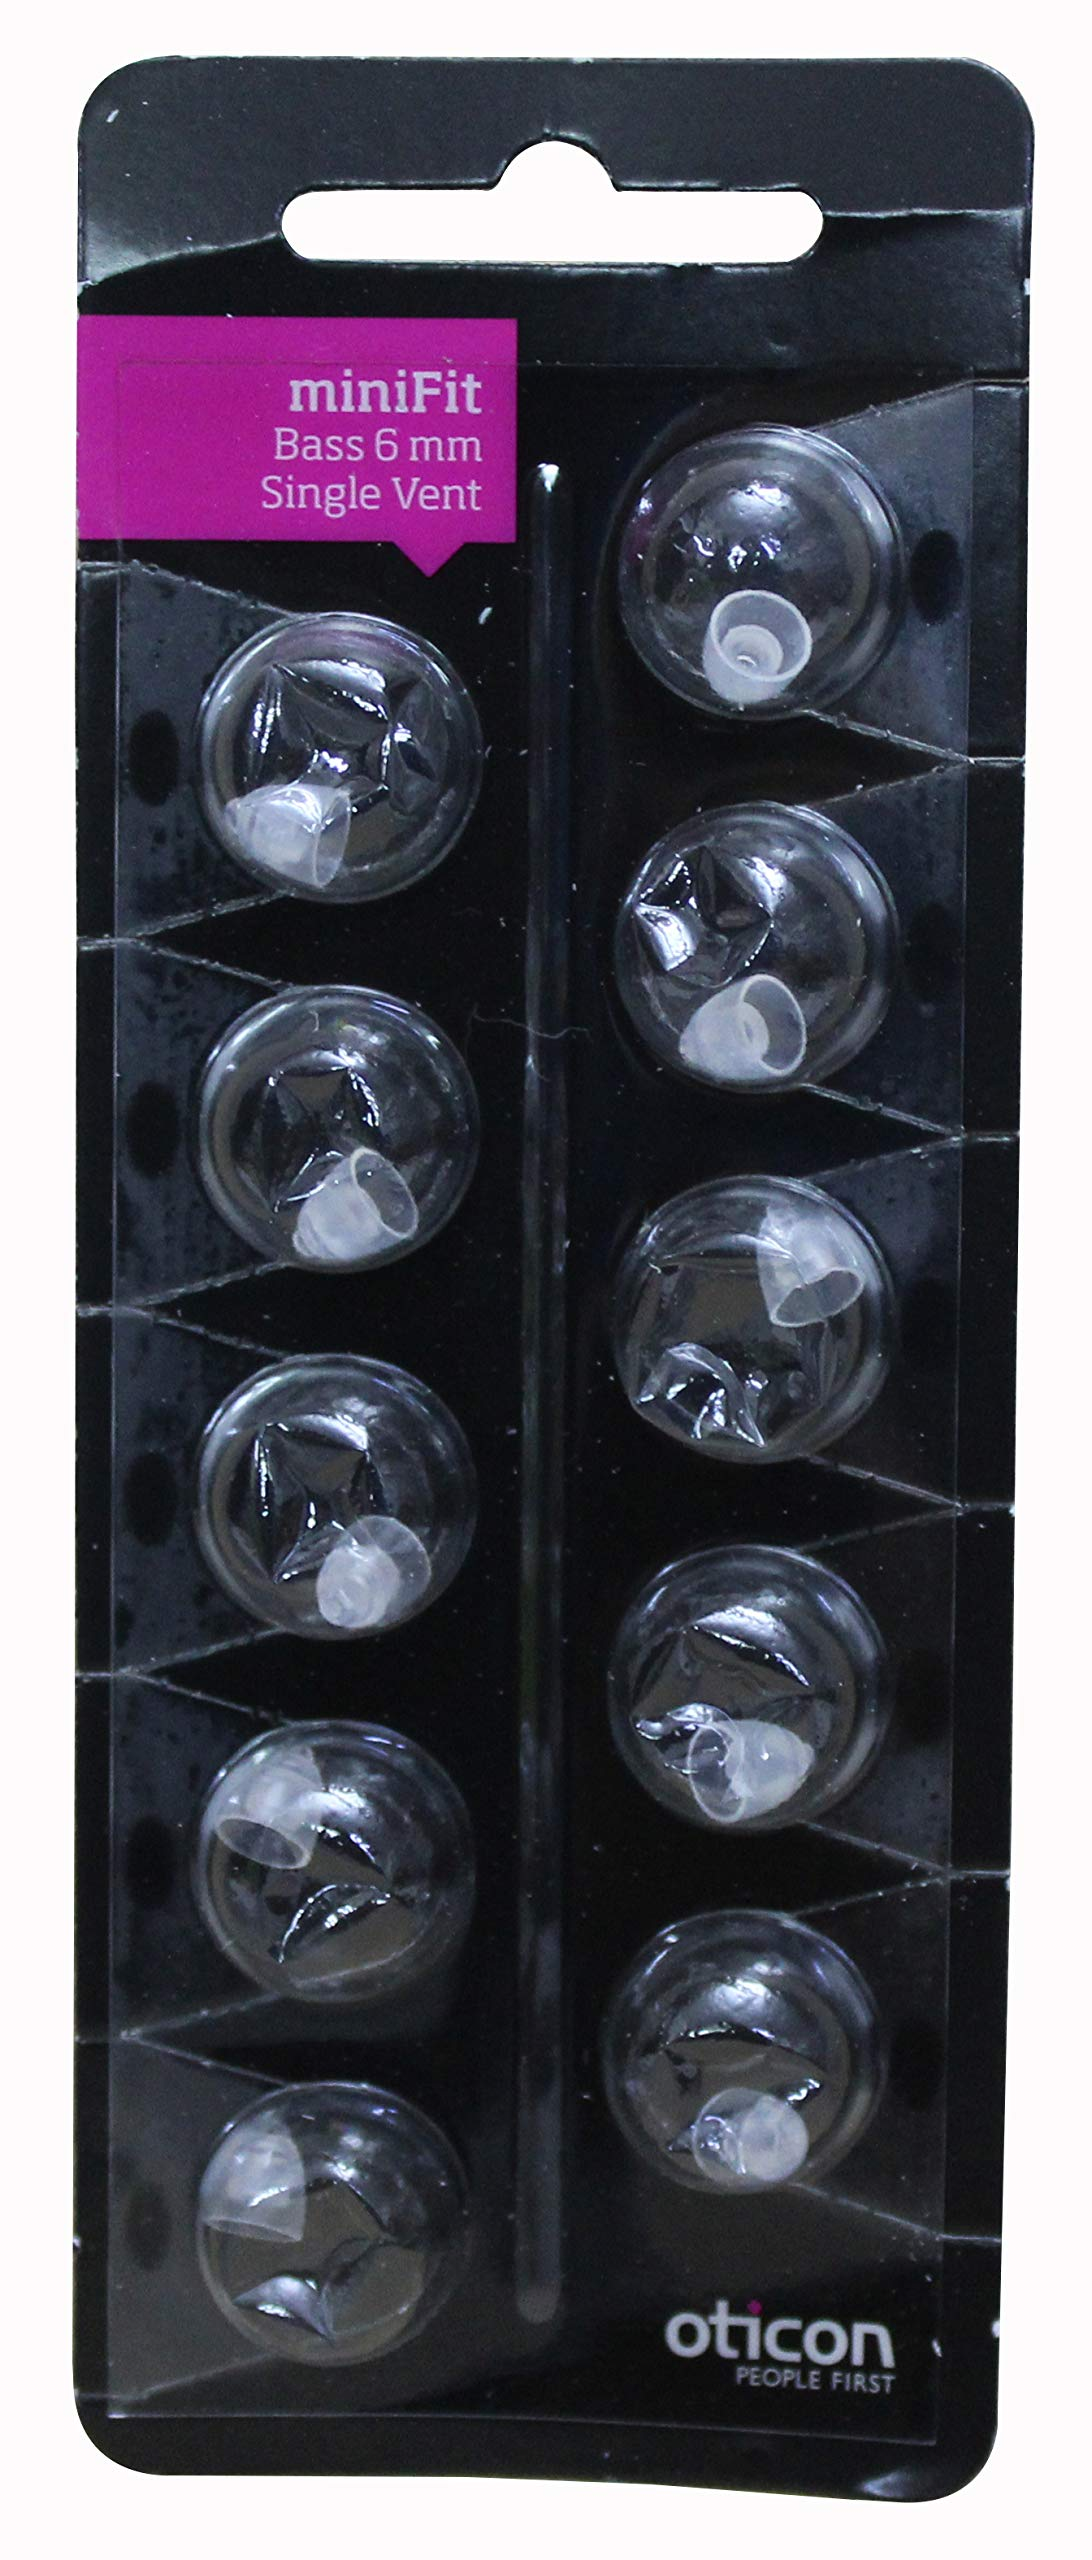 Oticon miniFit RIC Domes 10-Pack (Bass Single Vent, 6 mm) by FCS